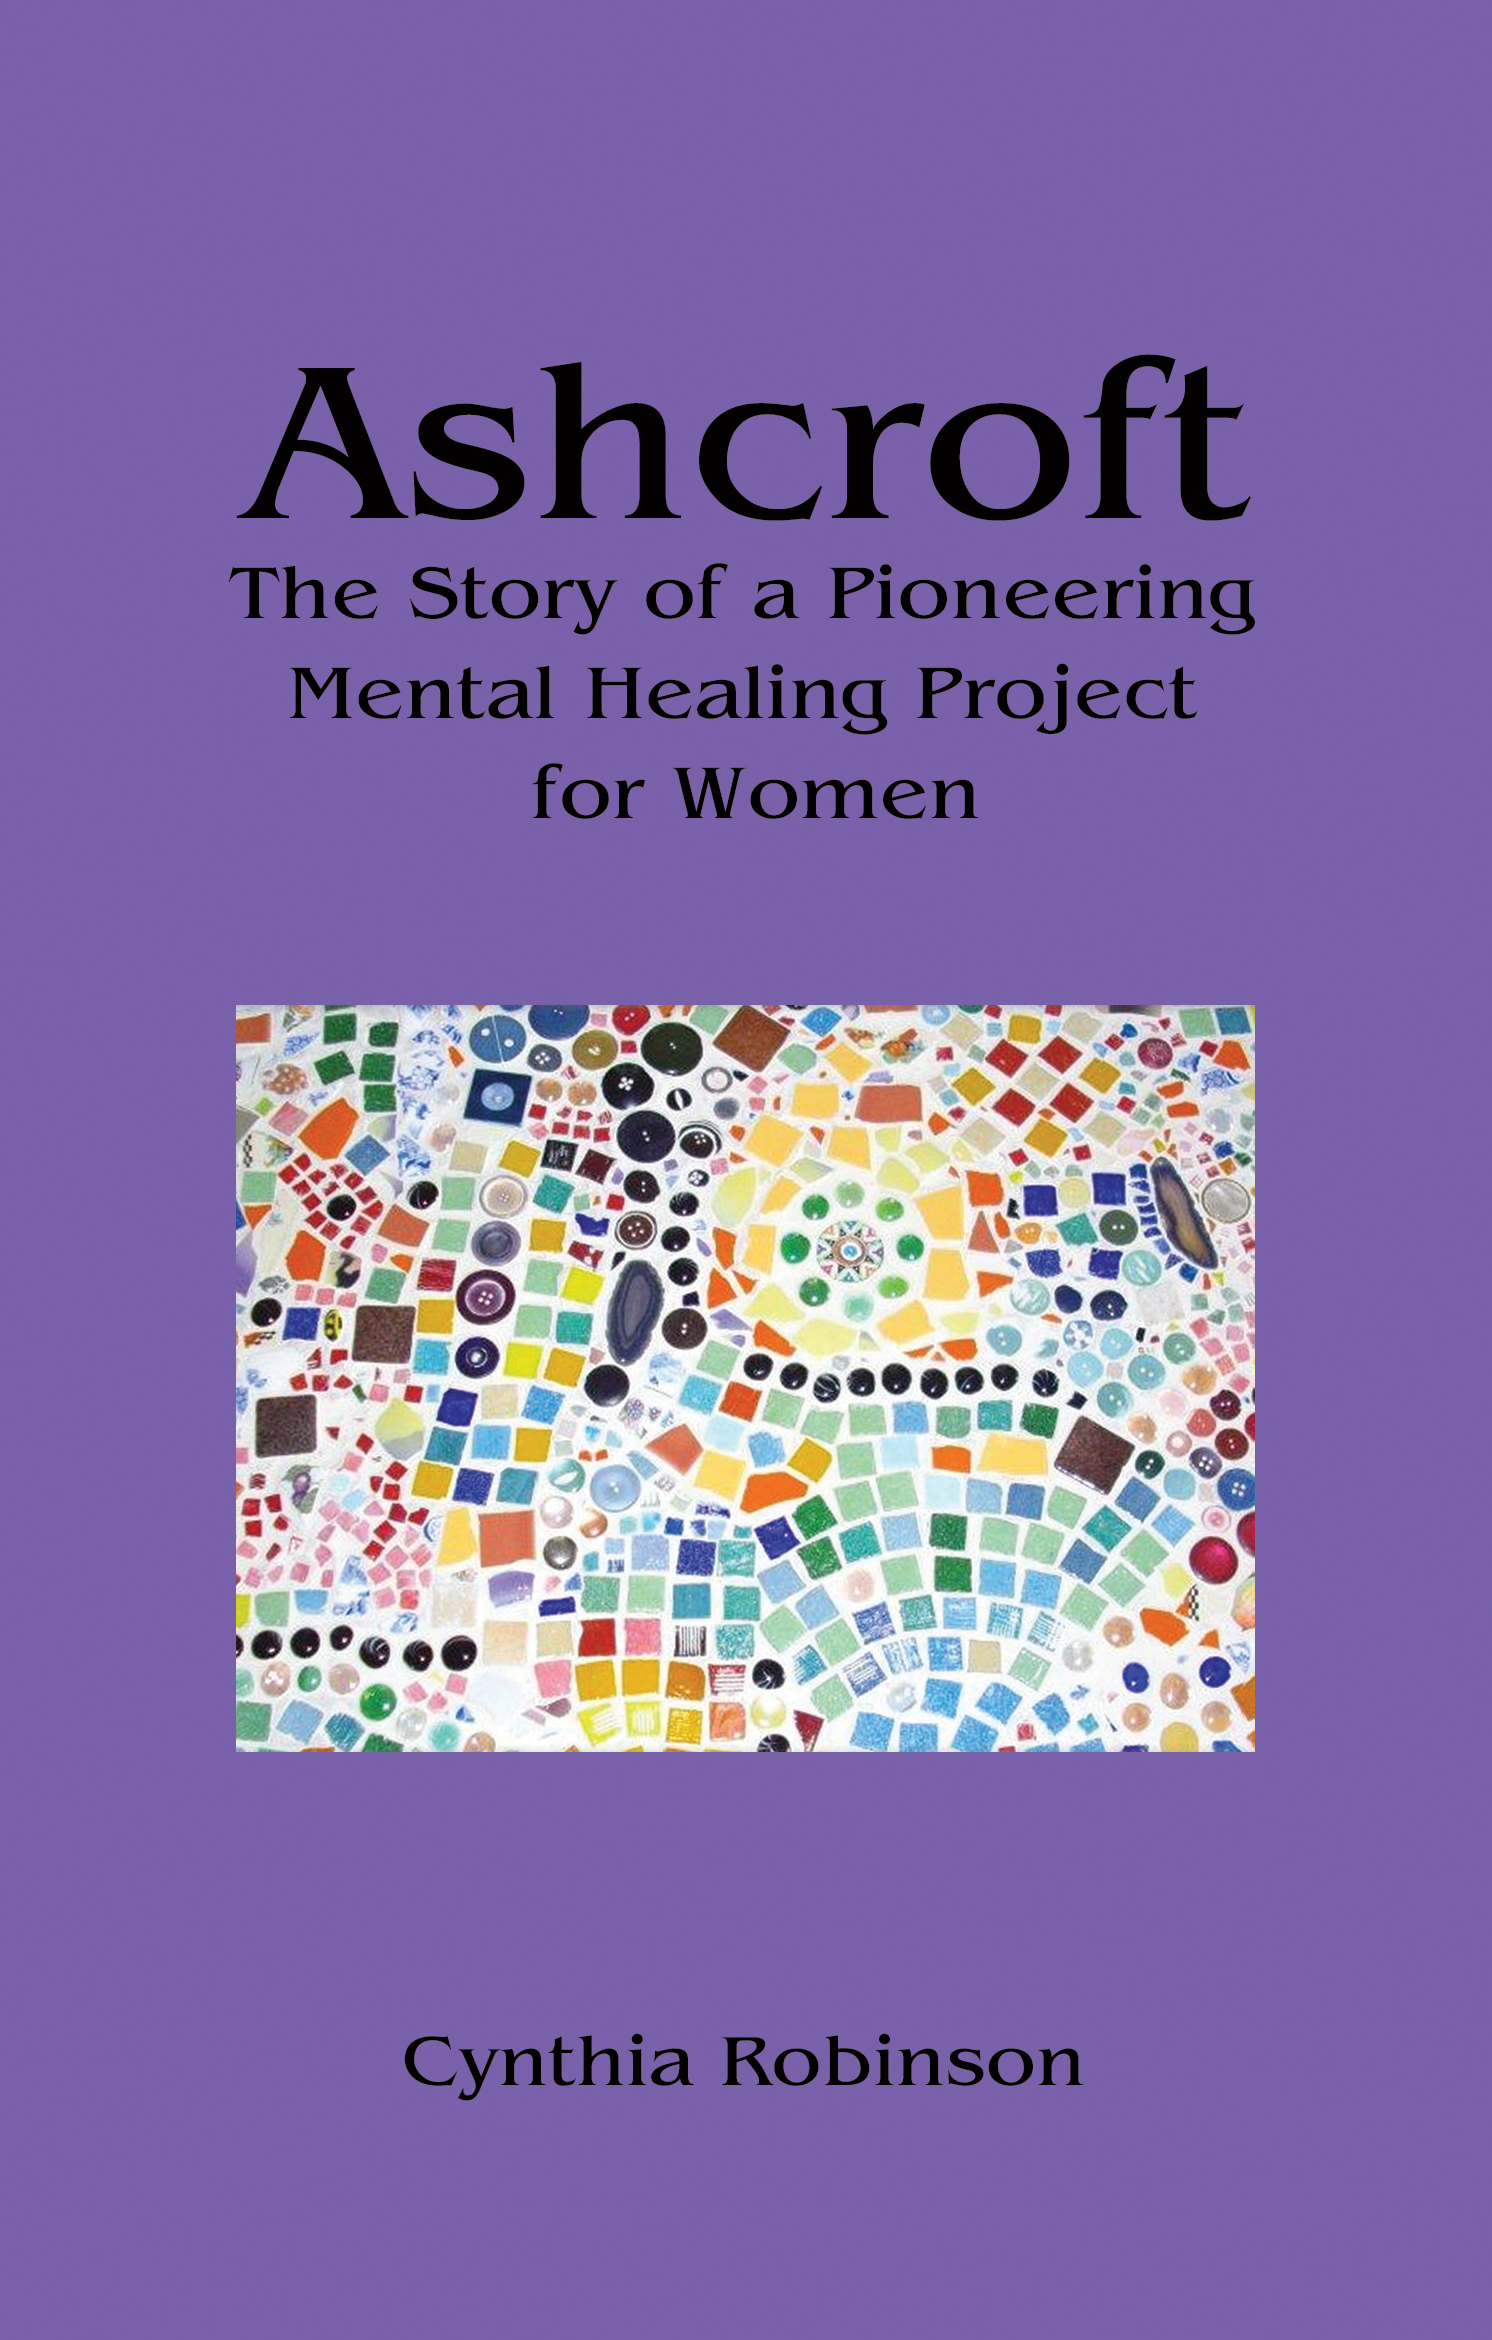 Ashcroft The Story of a Pioneering Mental Healing Project for Women